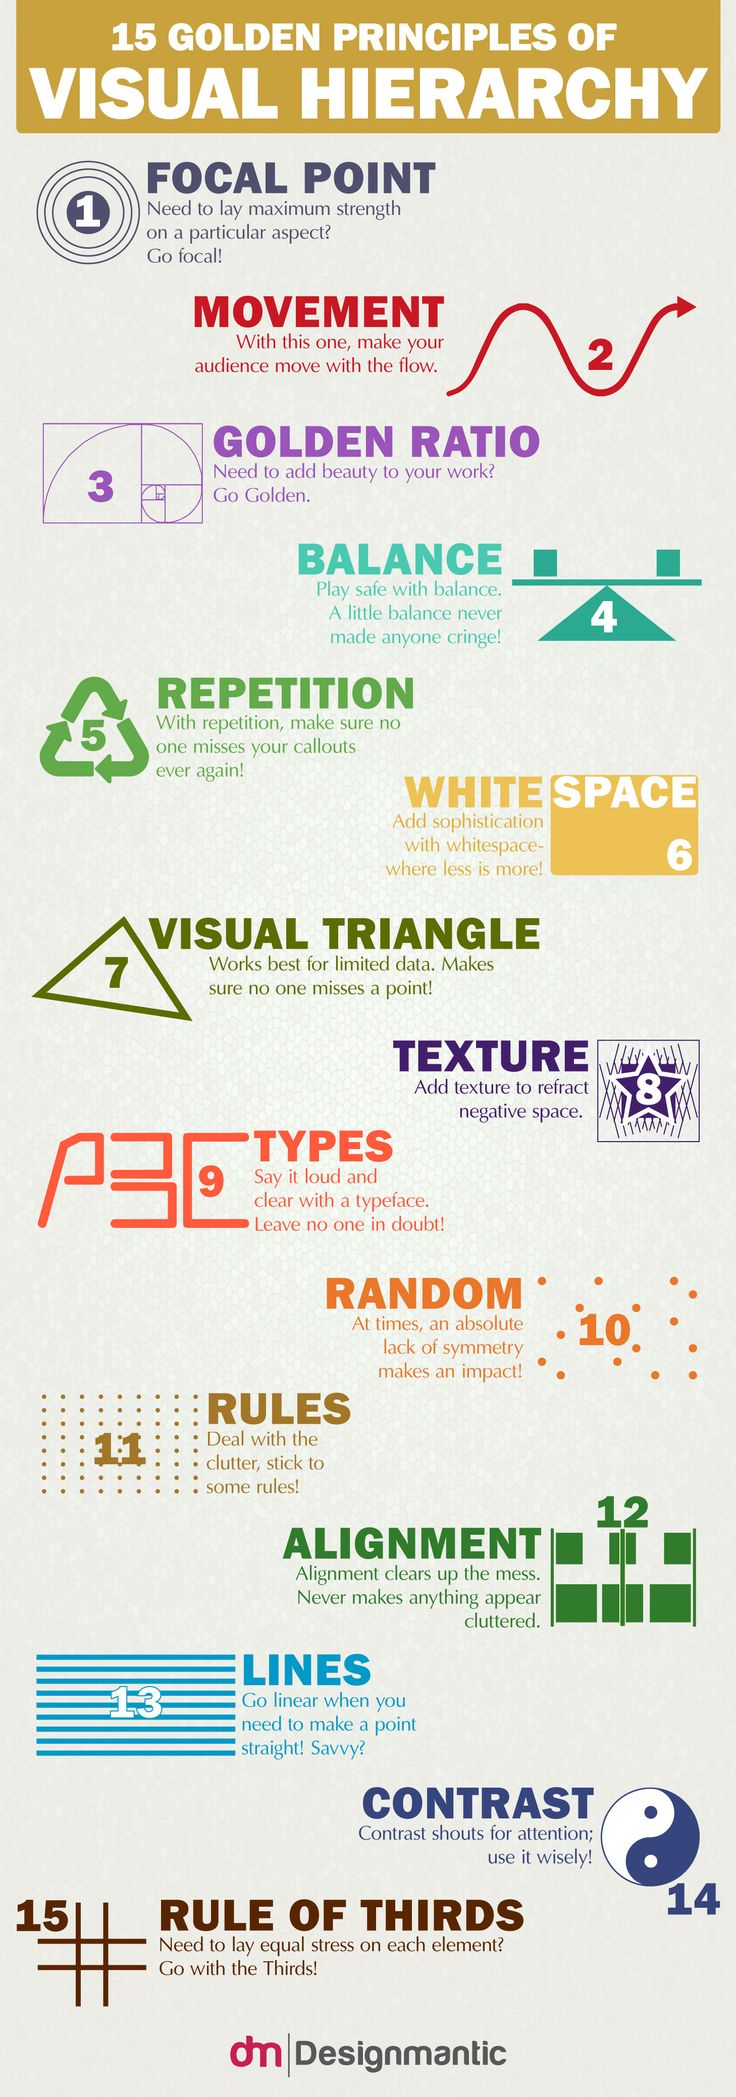 Golden Rules of Visual Hierarchy